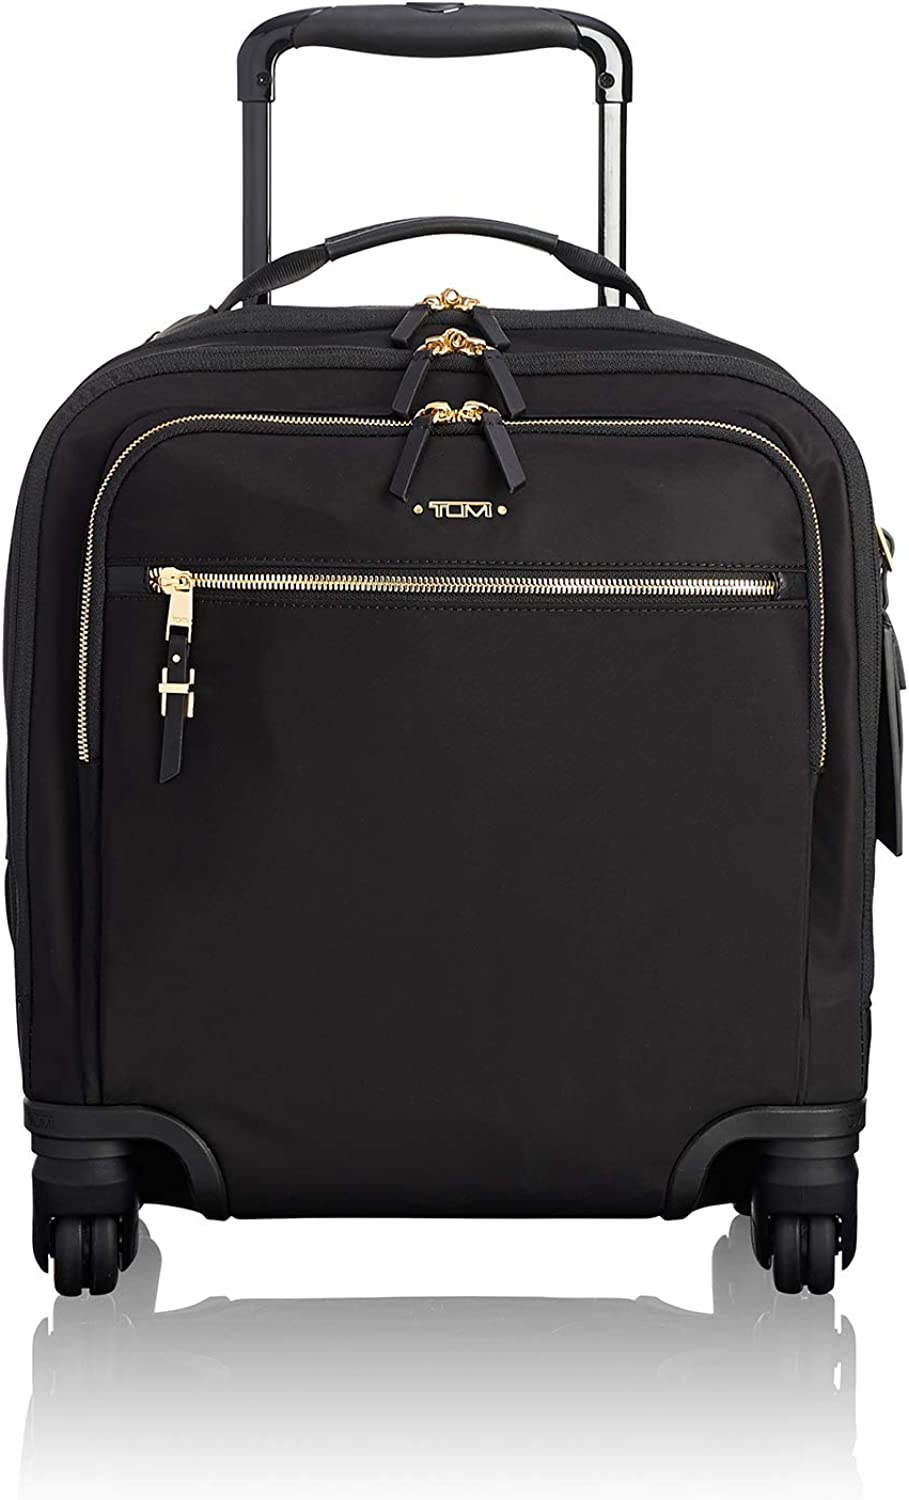 Tumi Women s Voyageur Osona Compact Carry On Suitcase